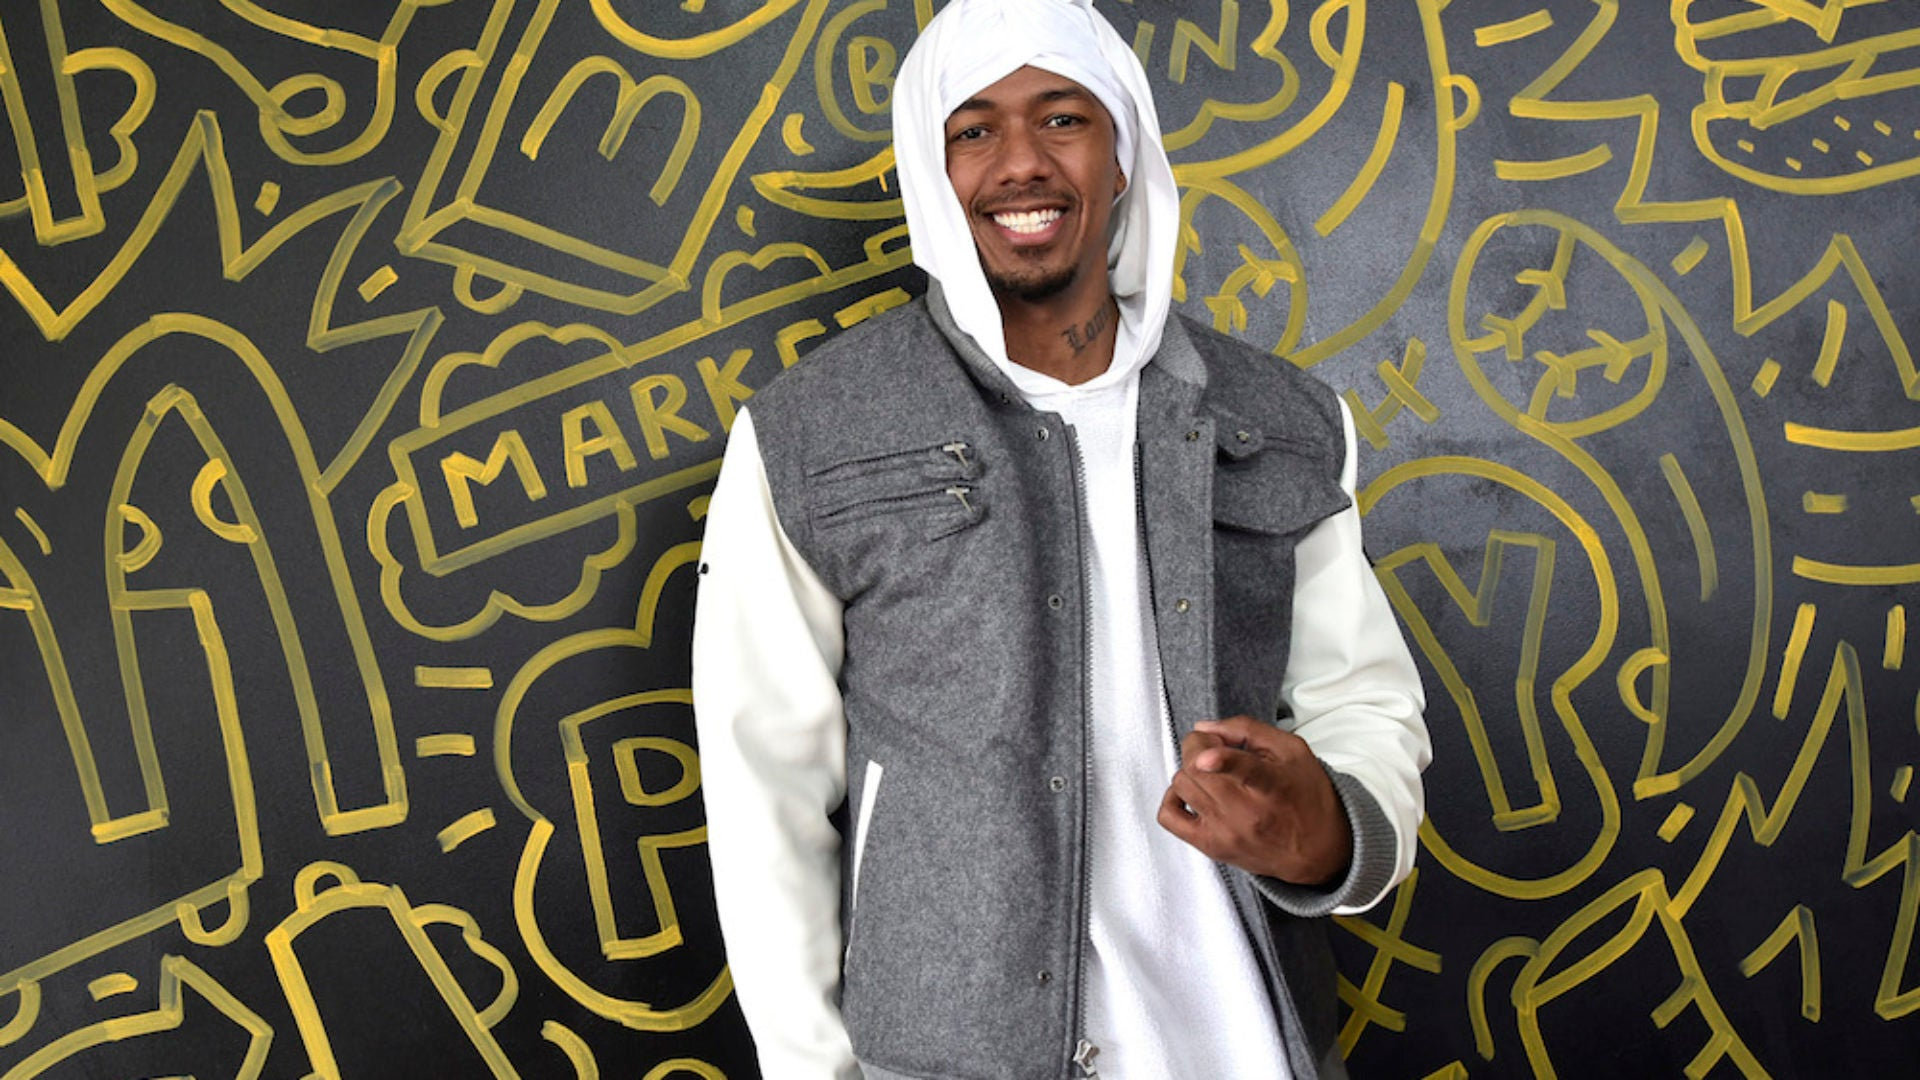 Nick Cannon Defends Kevin Hart Over Backlash From Homophobic Tweets